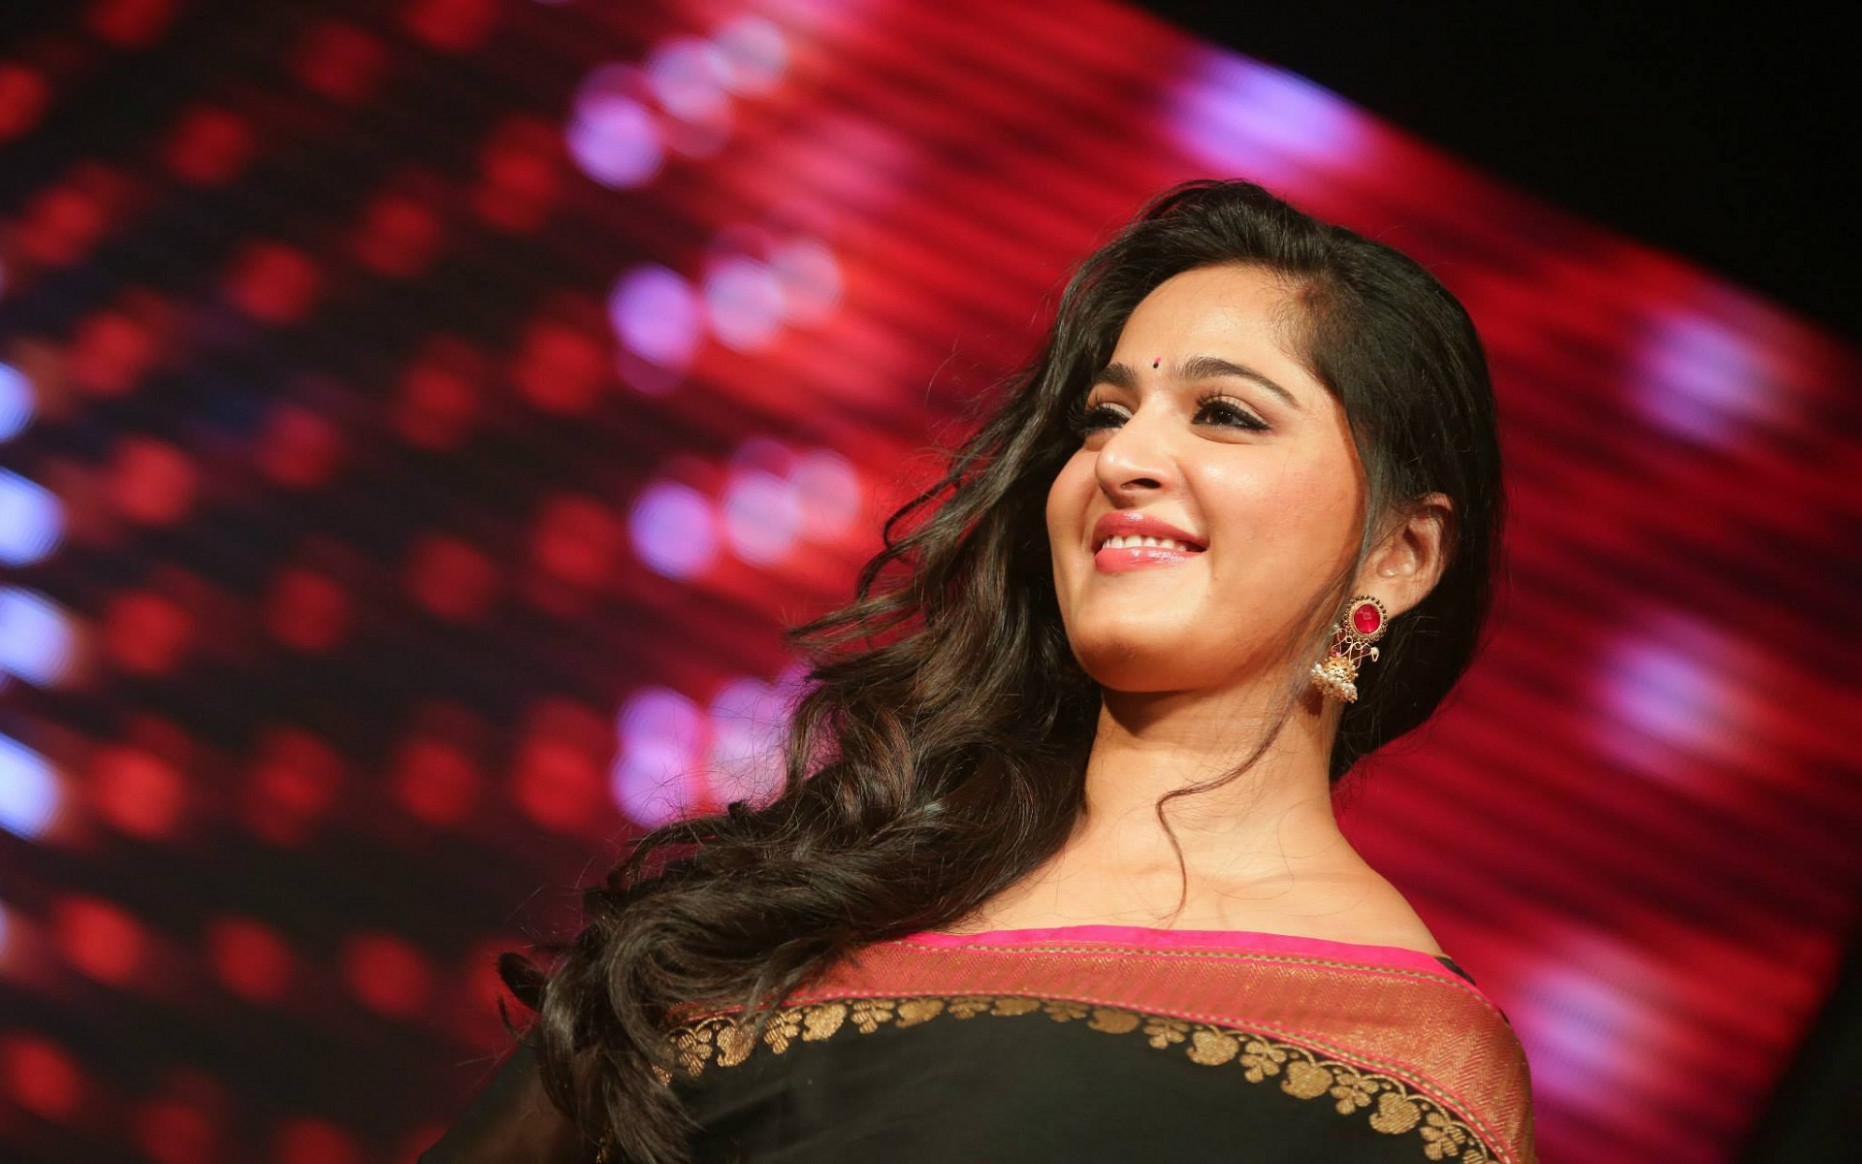 anushka tollywood girl wallpapers - DriverLayer Search Engine - tollywood girl hd wallpaper